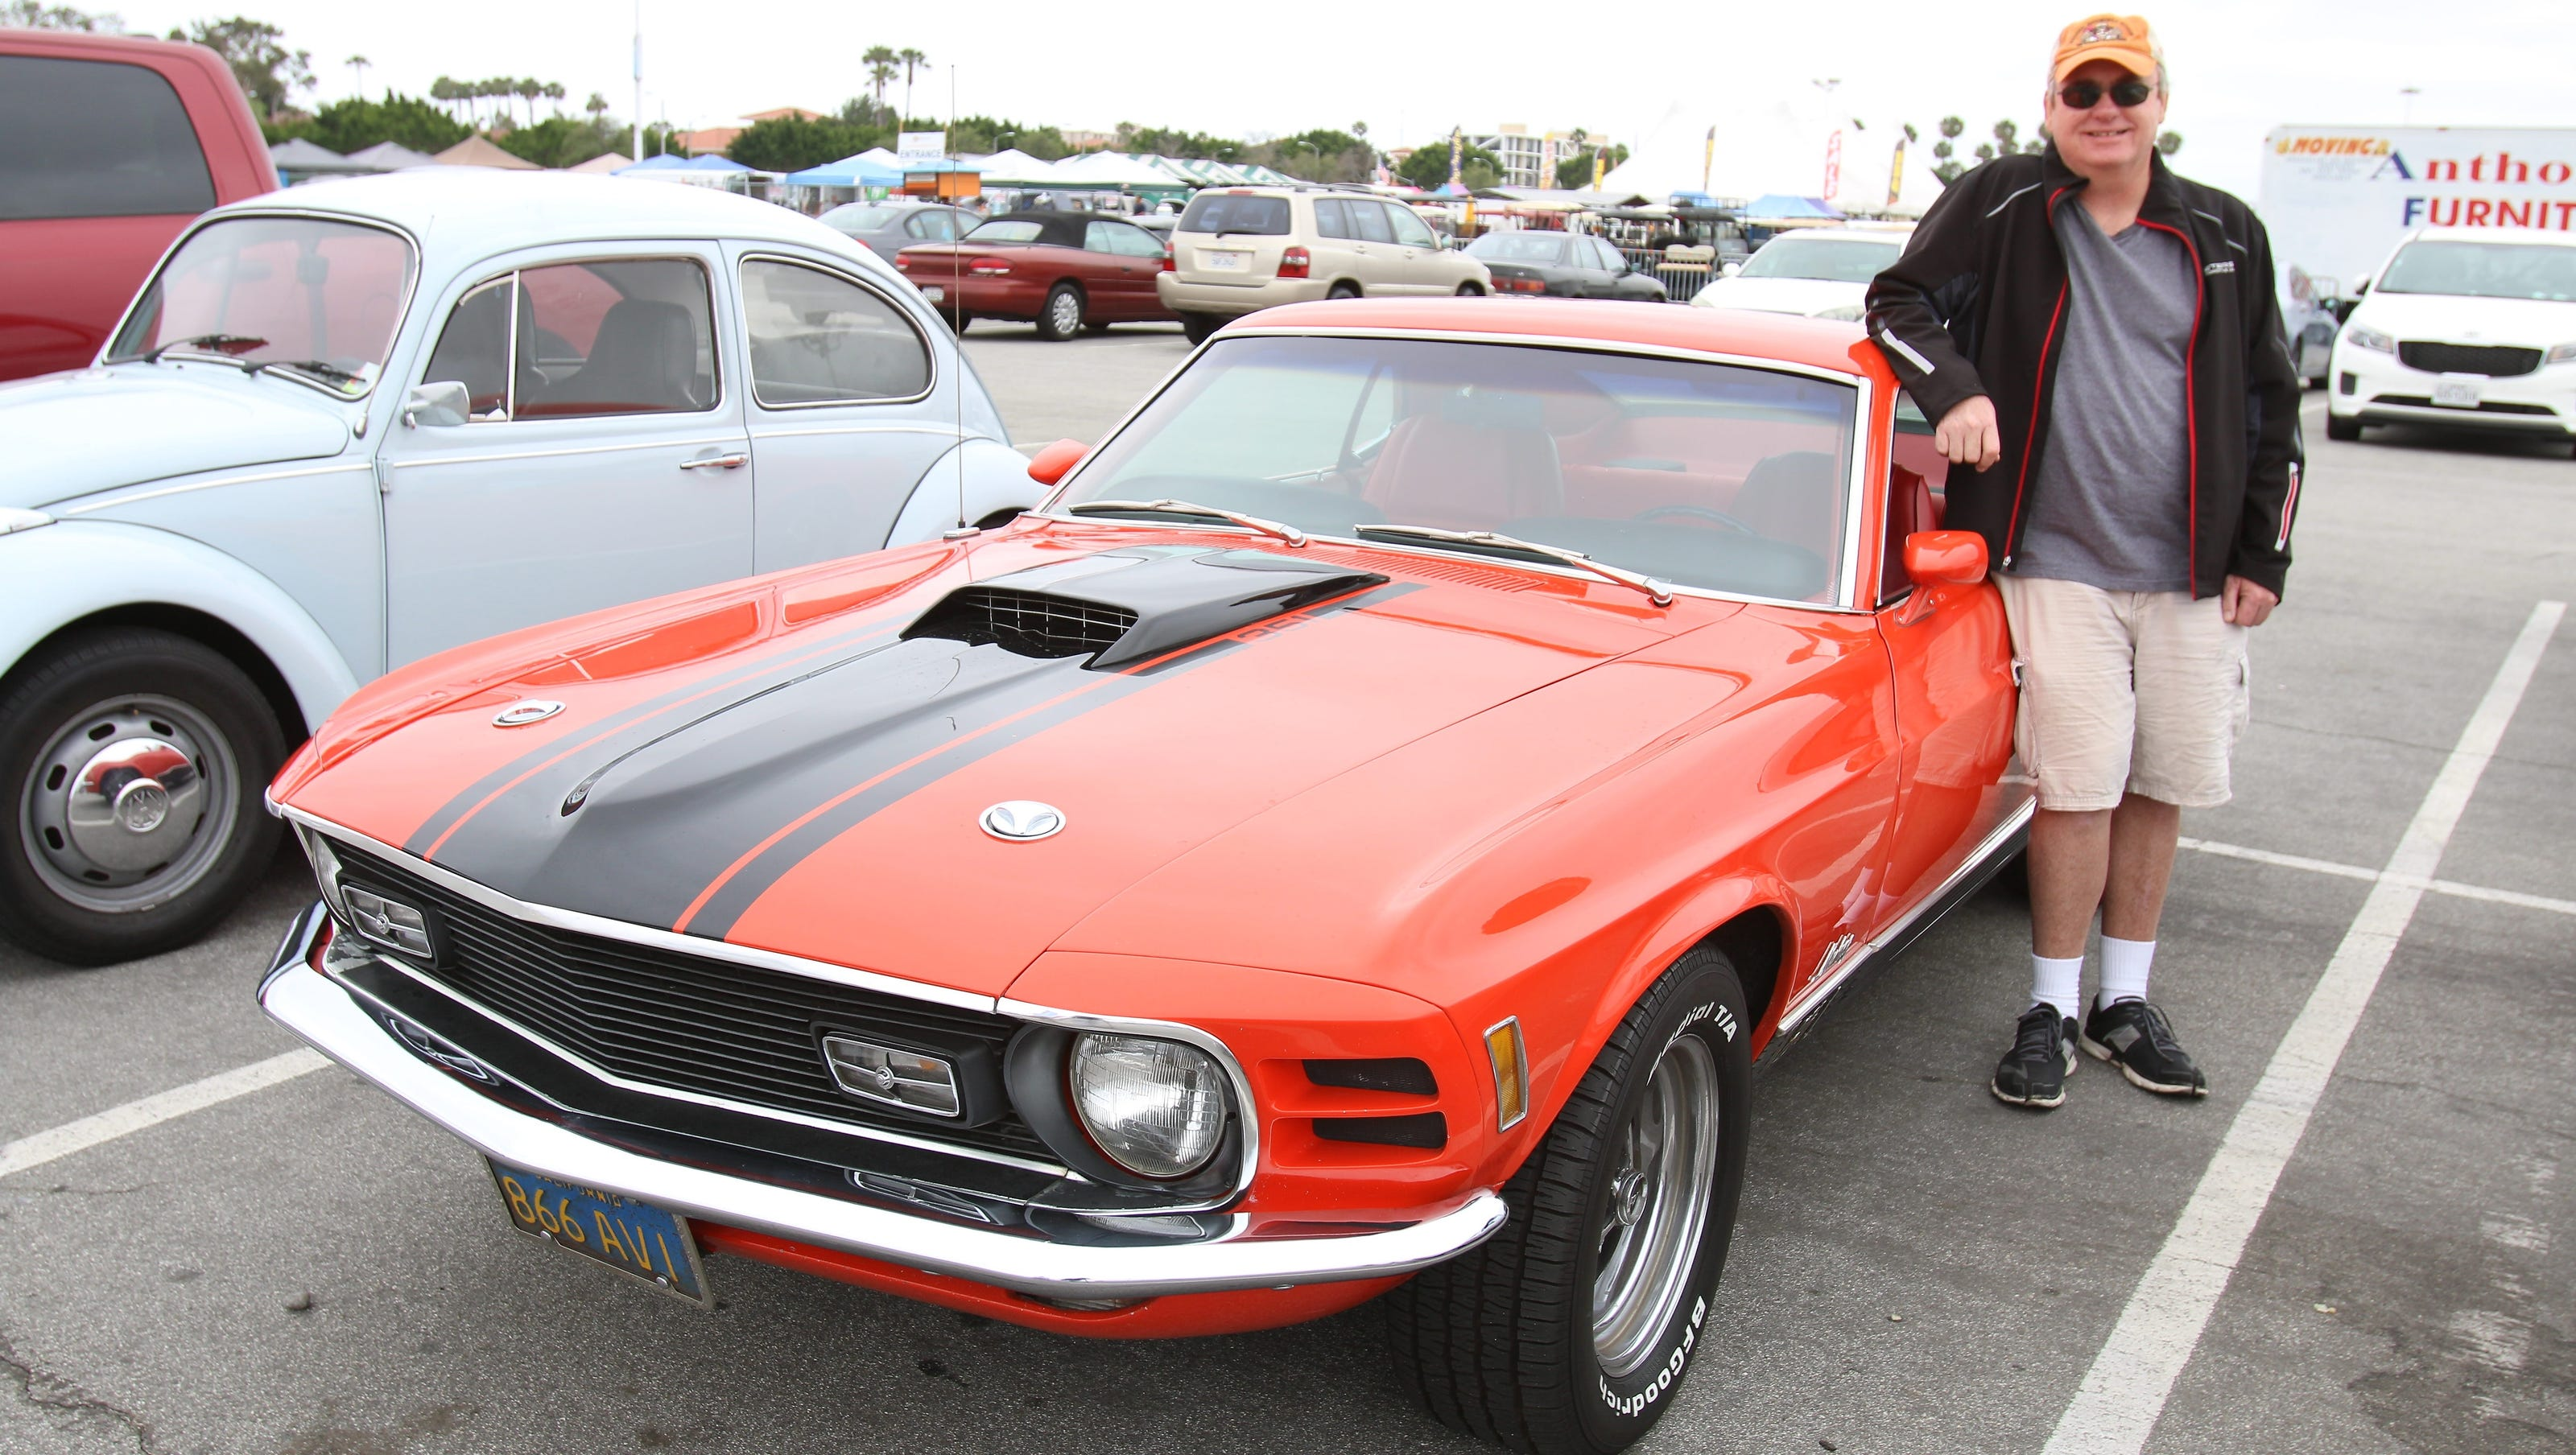 Just Cool Cars: '70 Ford Mustang Mach 1 Racks Up 350,000 Miles